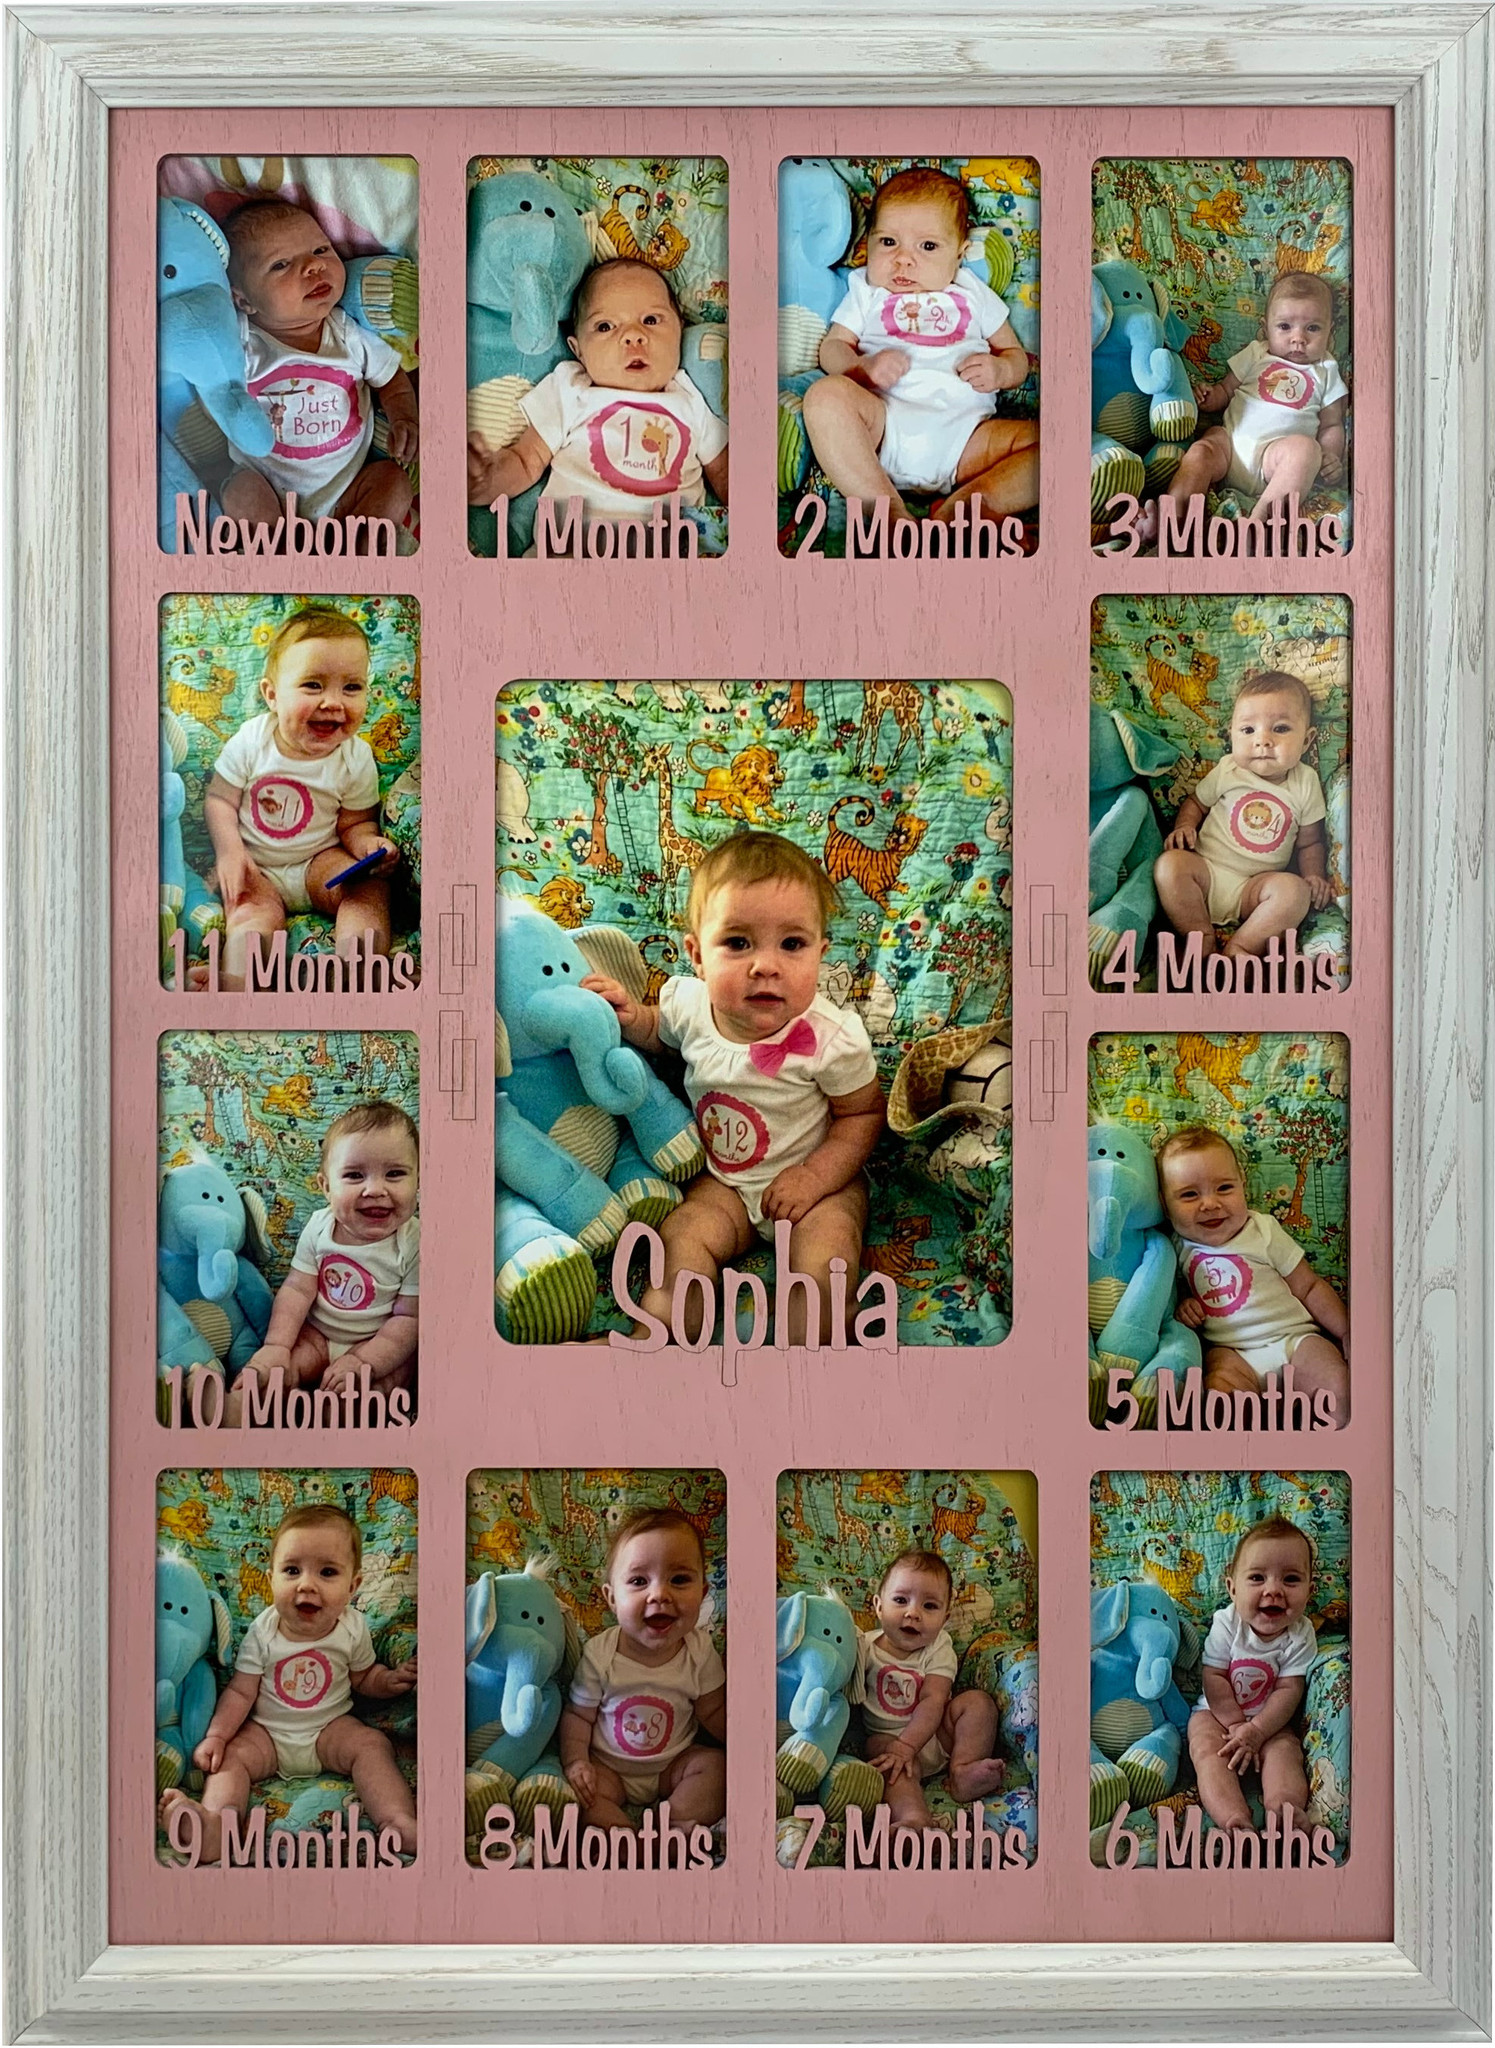 Month By Month Baby Picture Frame : month, picture, frame, Picture, Frame, Collage, Personalized, 19x27